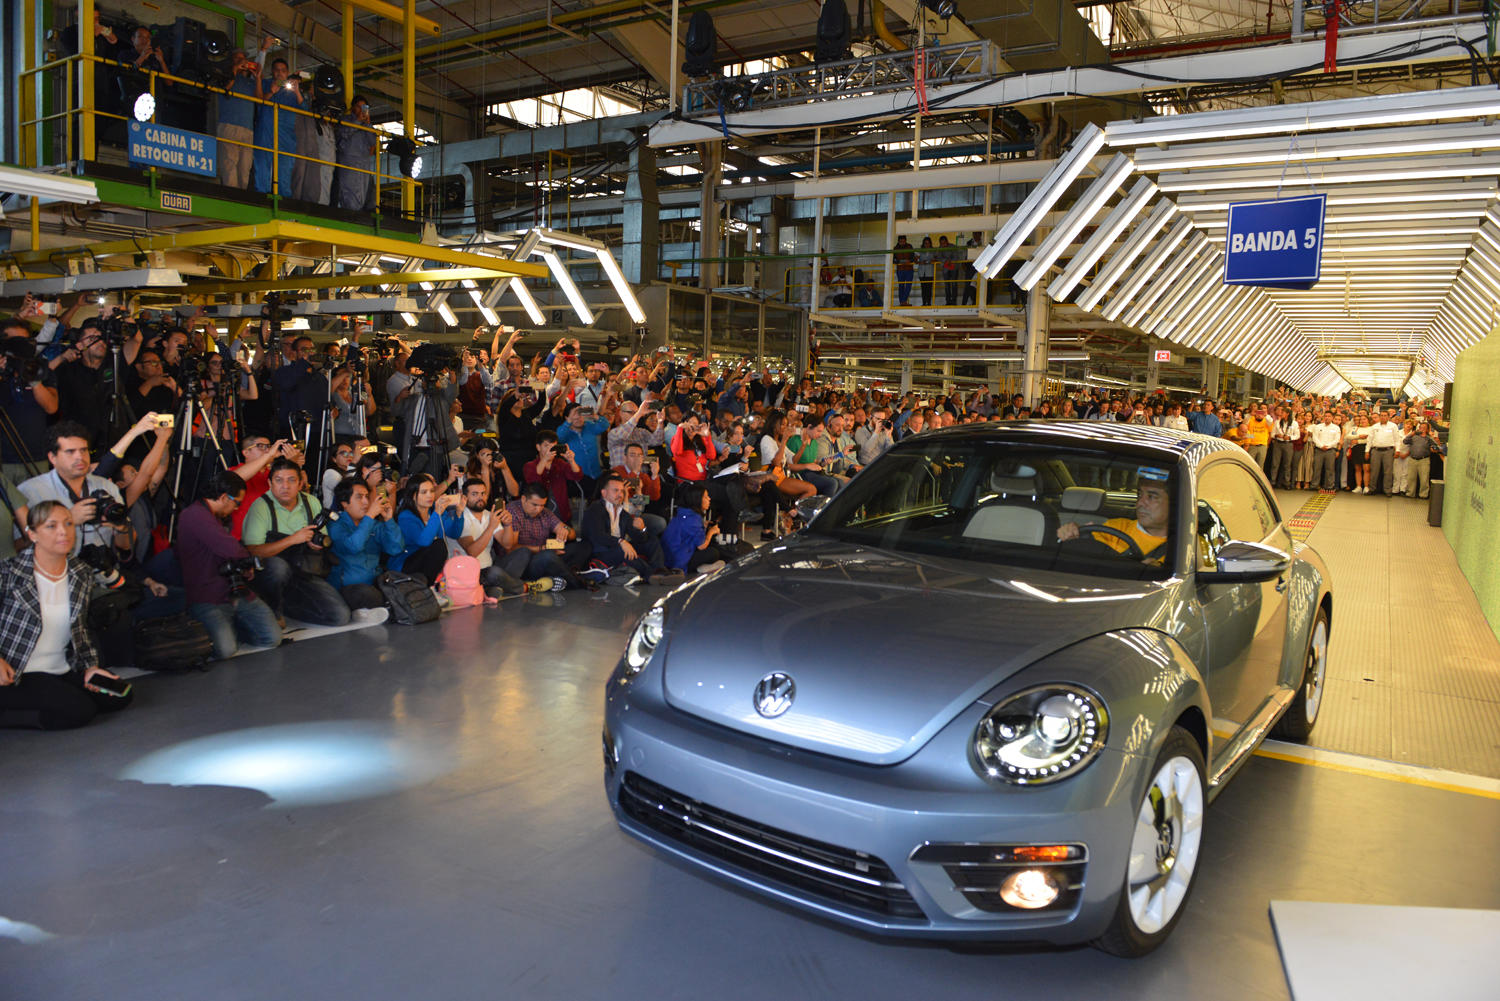 The VW Beetle will no longer be produced